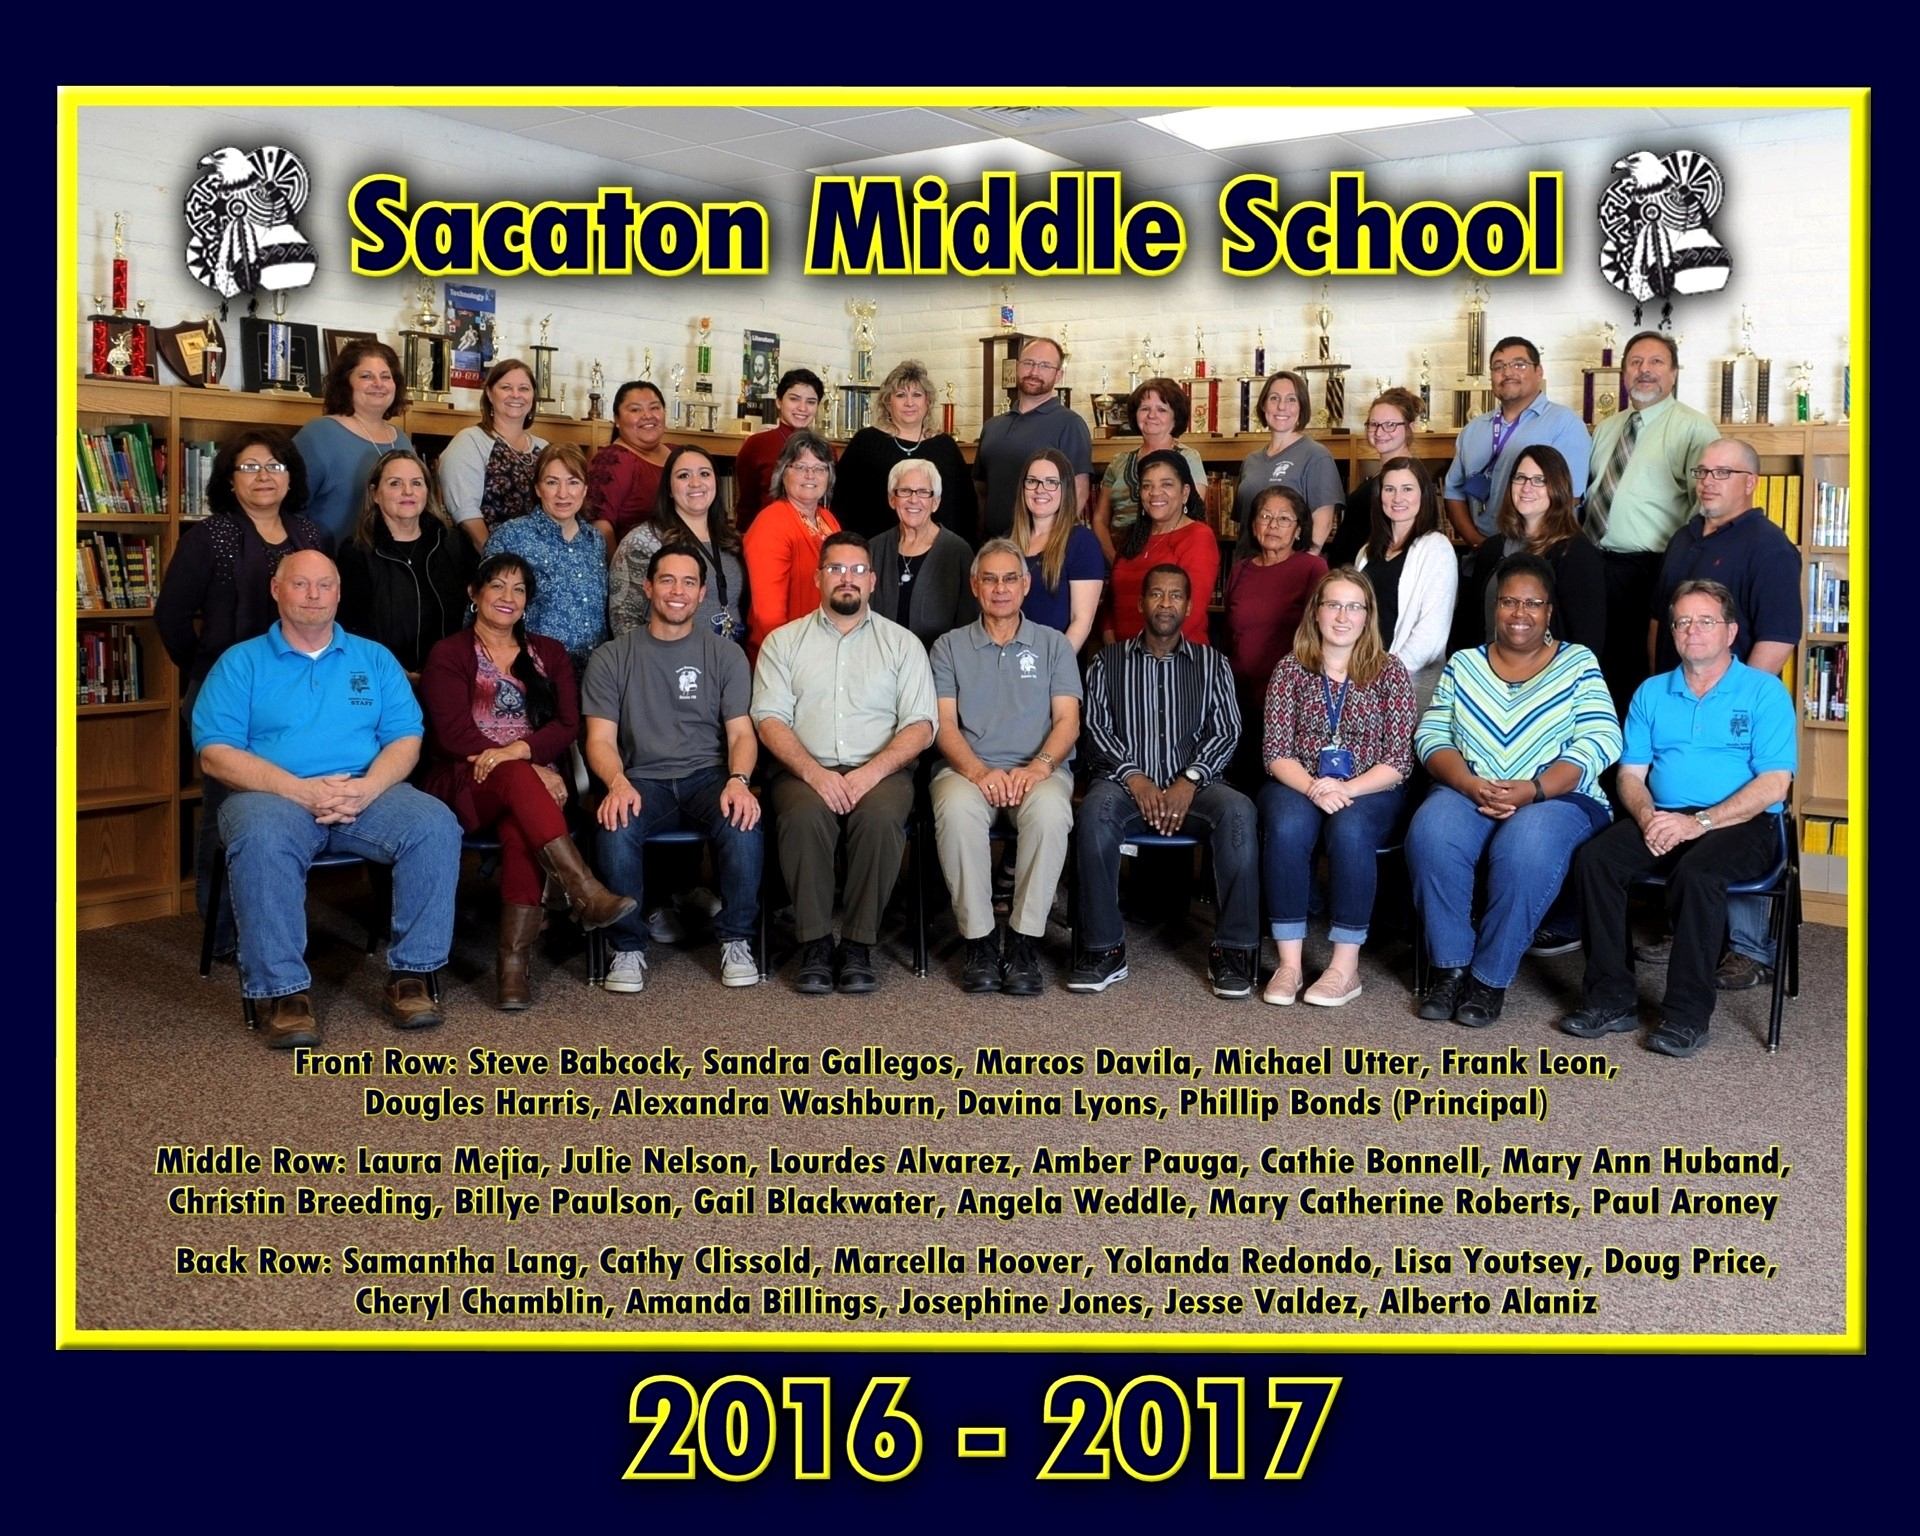 Sacaton Middle School Staff 2016-2017